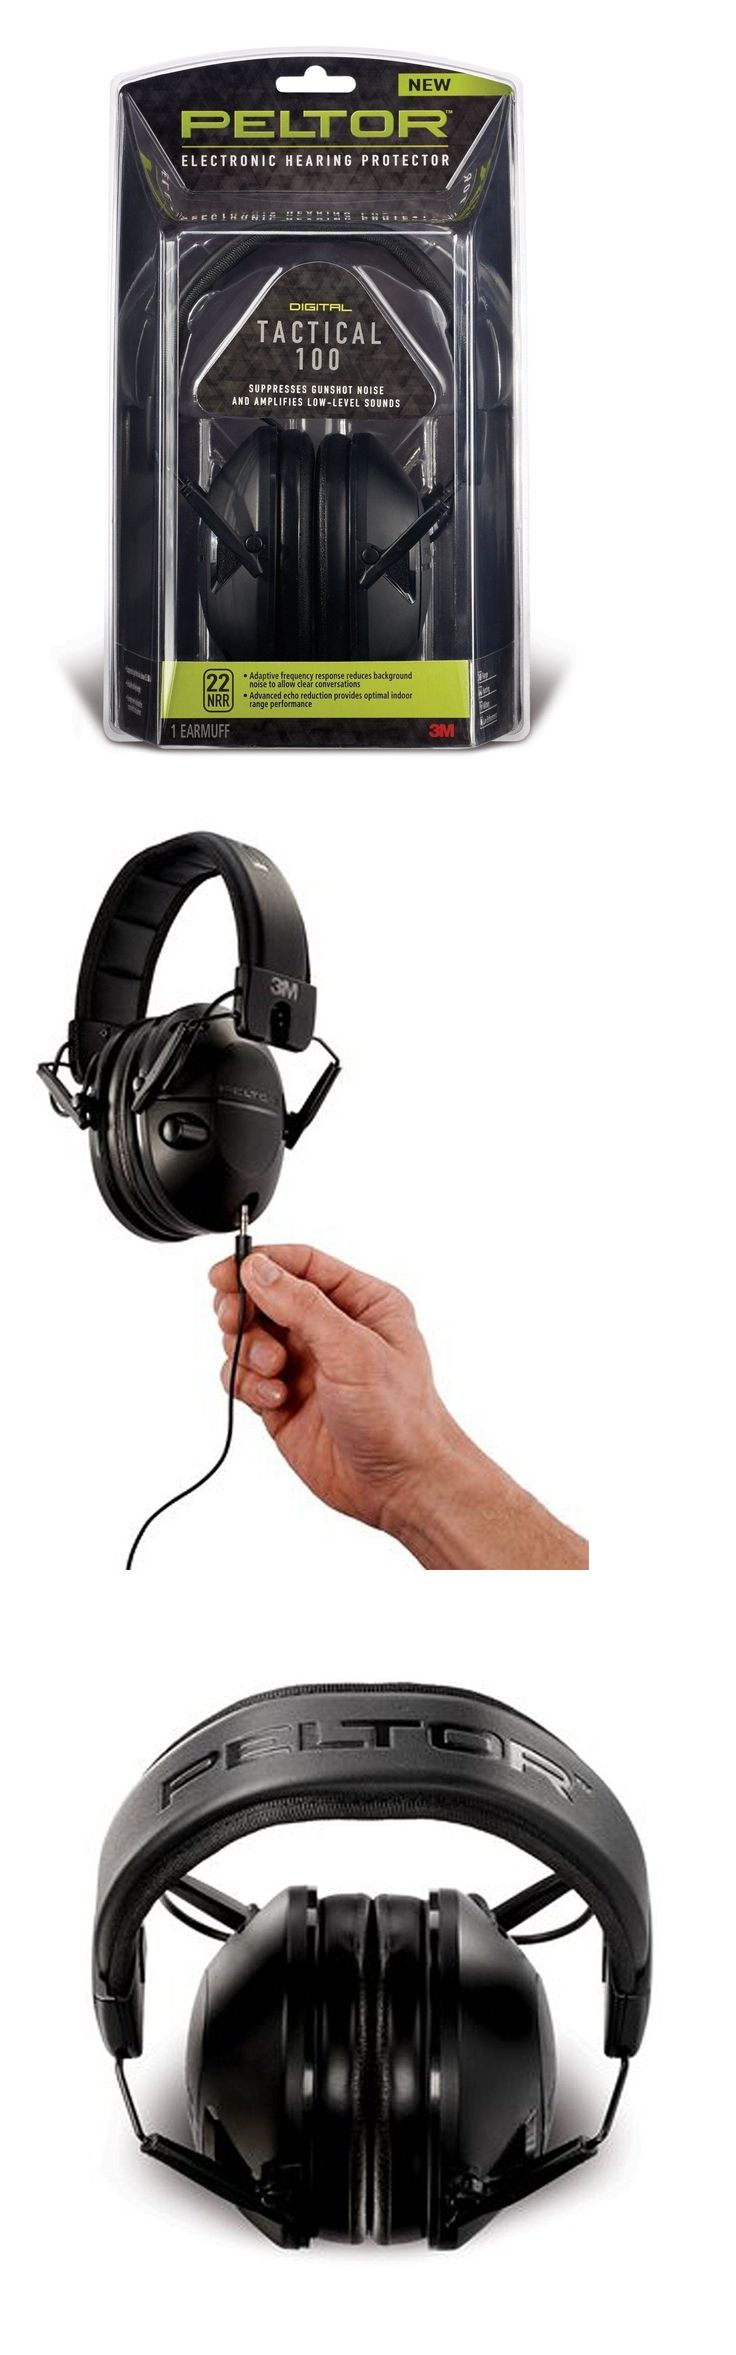 Hearing Protection 73942: Peltor Tactical 100 Earmuffs Electronic Hearing Protector 3M - Tac100 -> BUY IT NOW ONLY: $57.5 on eBay!